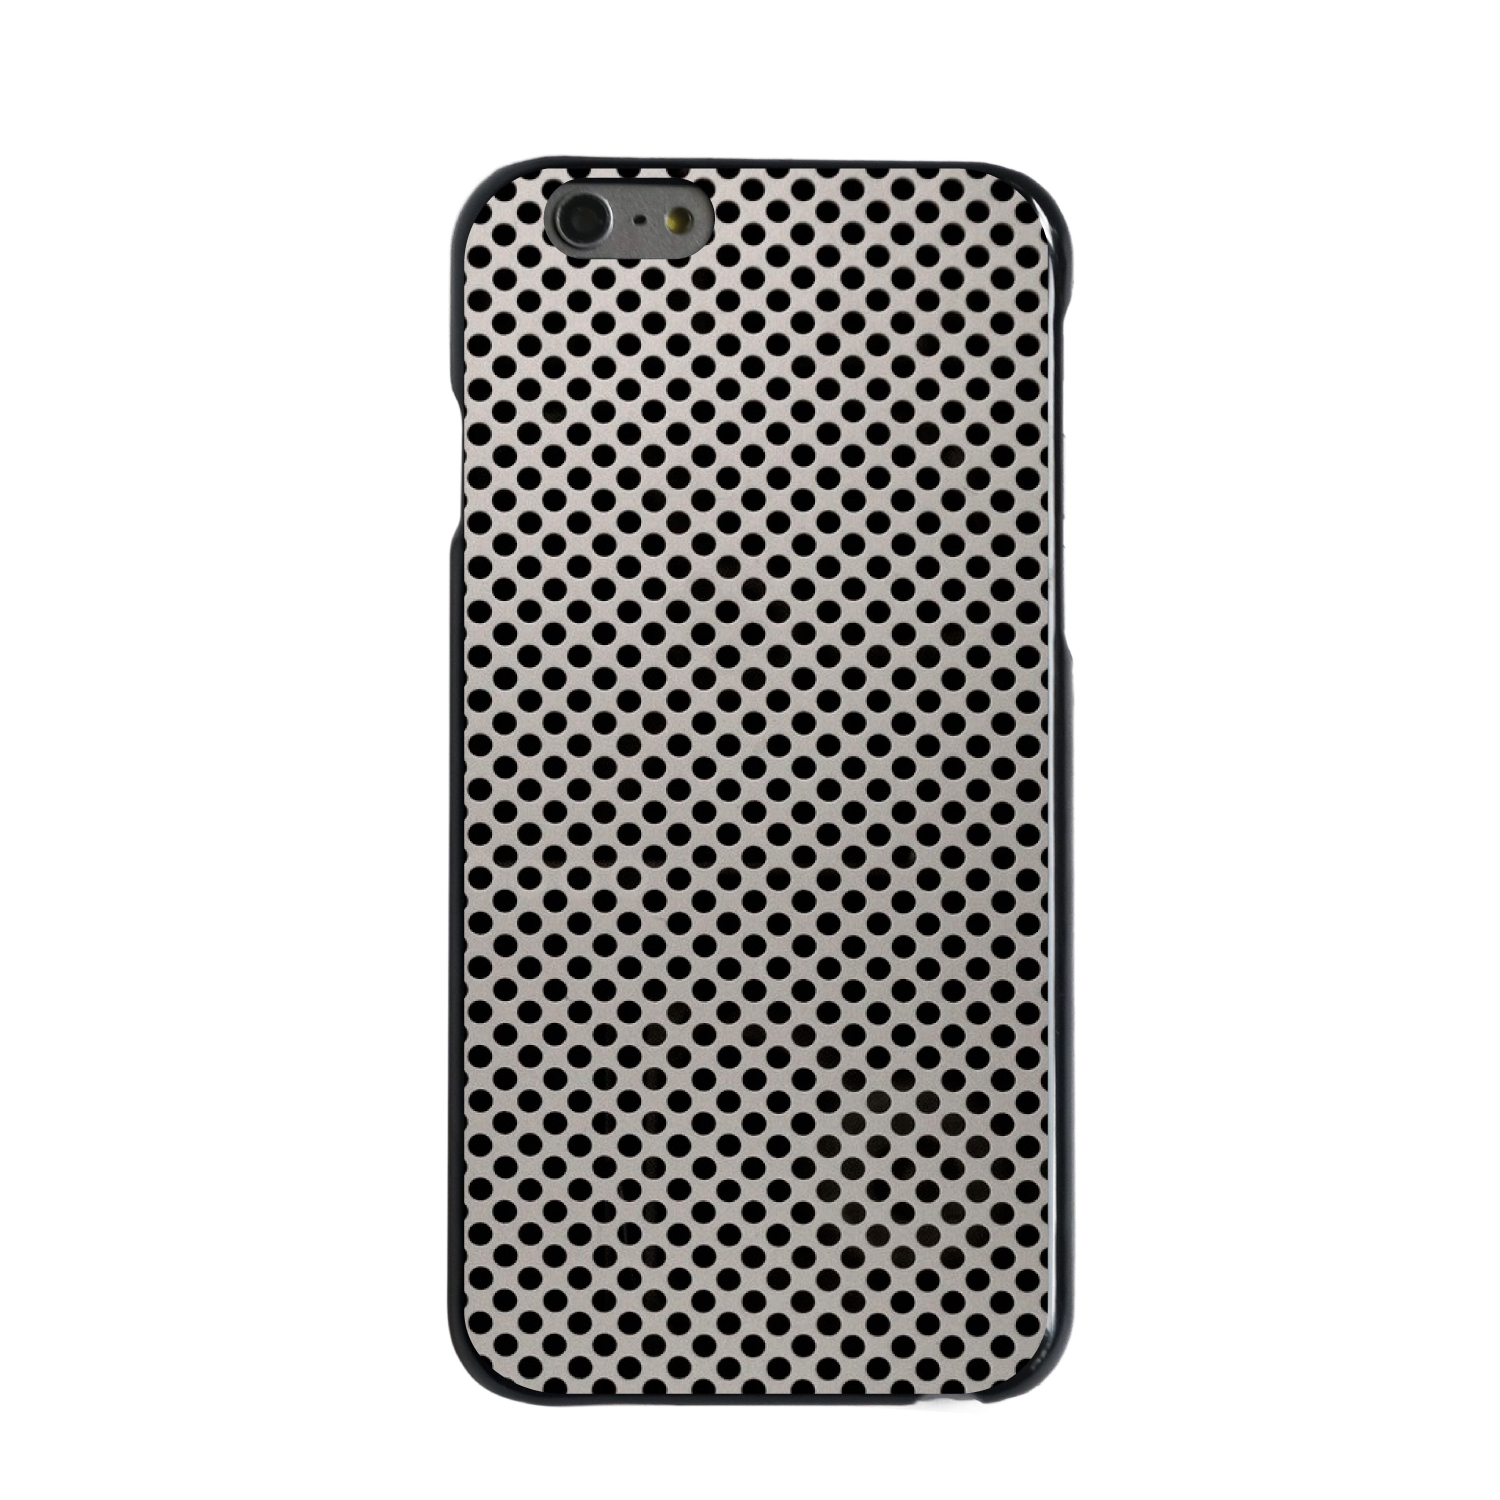 "CUSTOM Black Hard Plastic Snap-On Case for Apple iPhone 6 PLUS / 6S PLUS (5.5"" Screen) - Aluminum Holes Pattern"